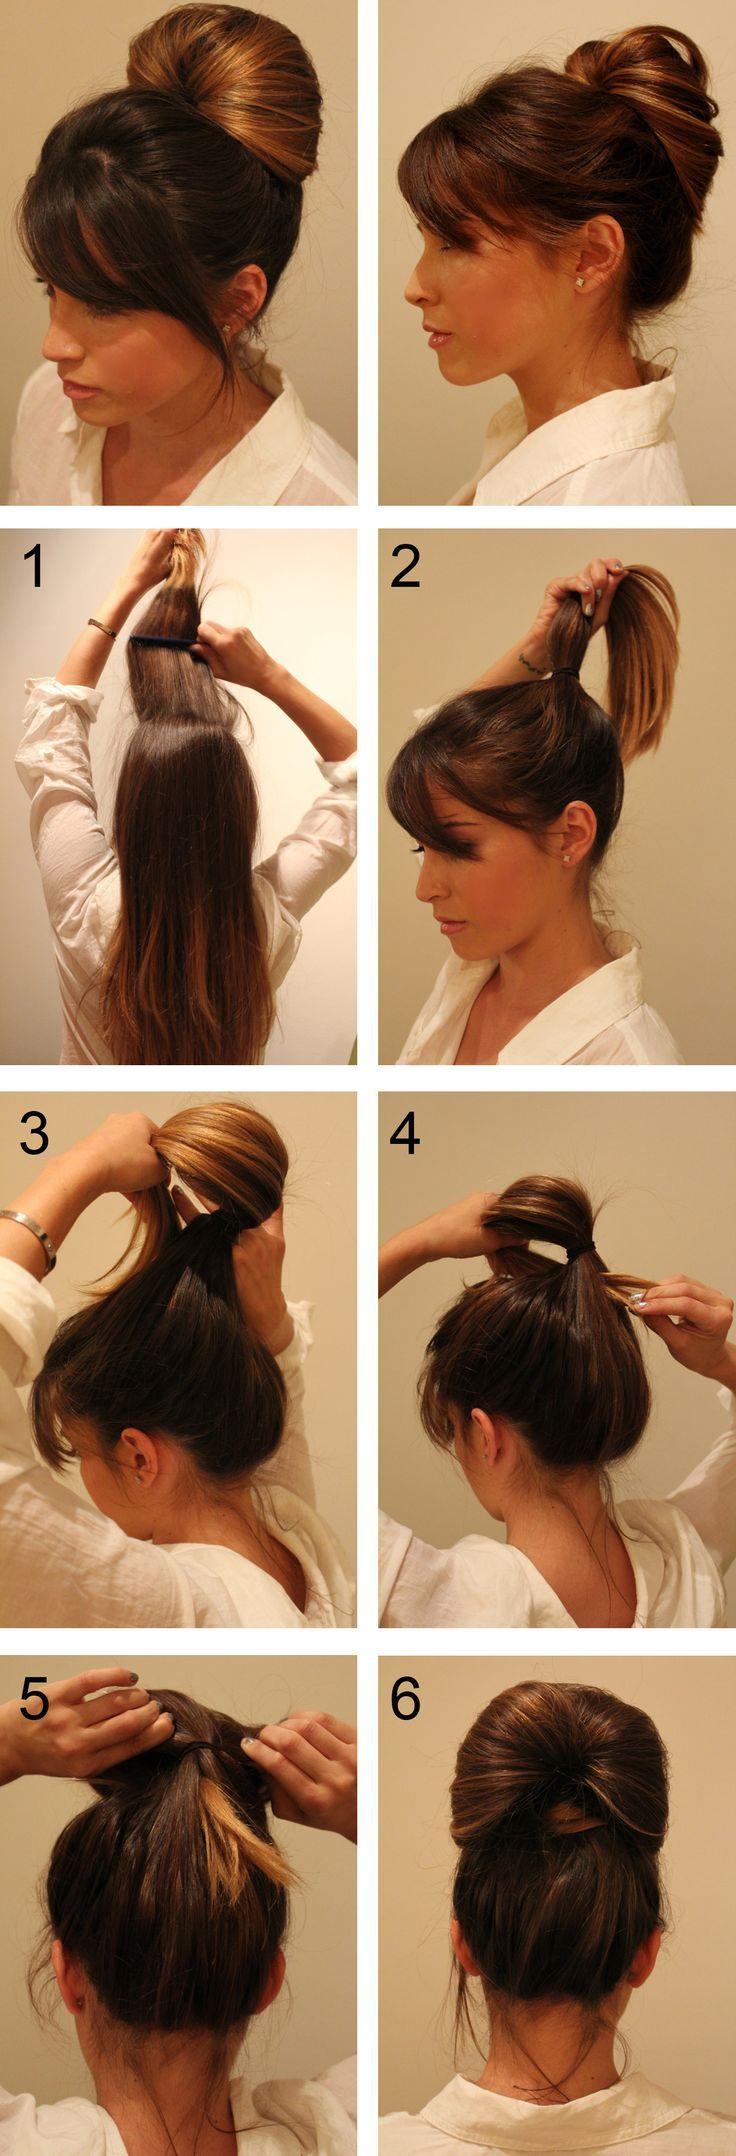 Outstanding 1000 Ideas About Lazy Day Hairstyles On Pinterest Full Ponytail Hairstyles For Women Draintrainus